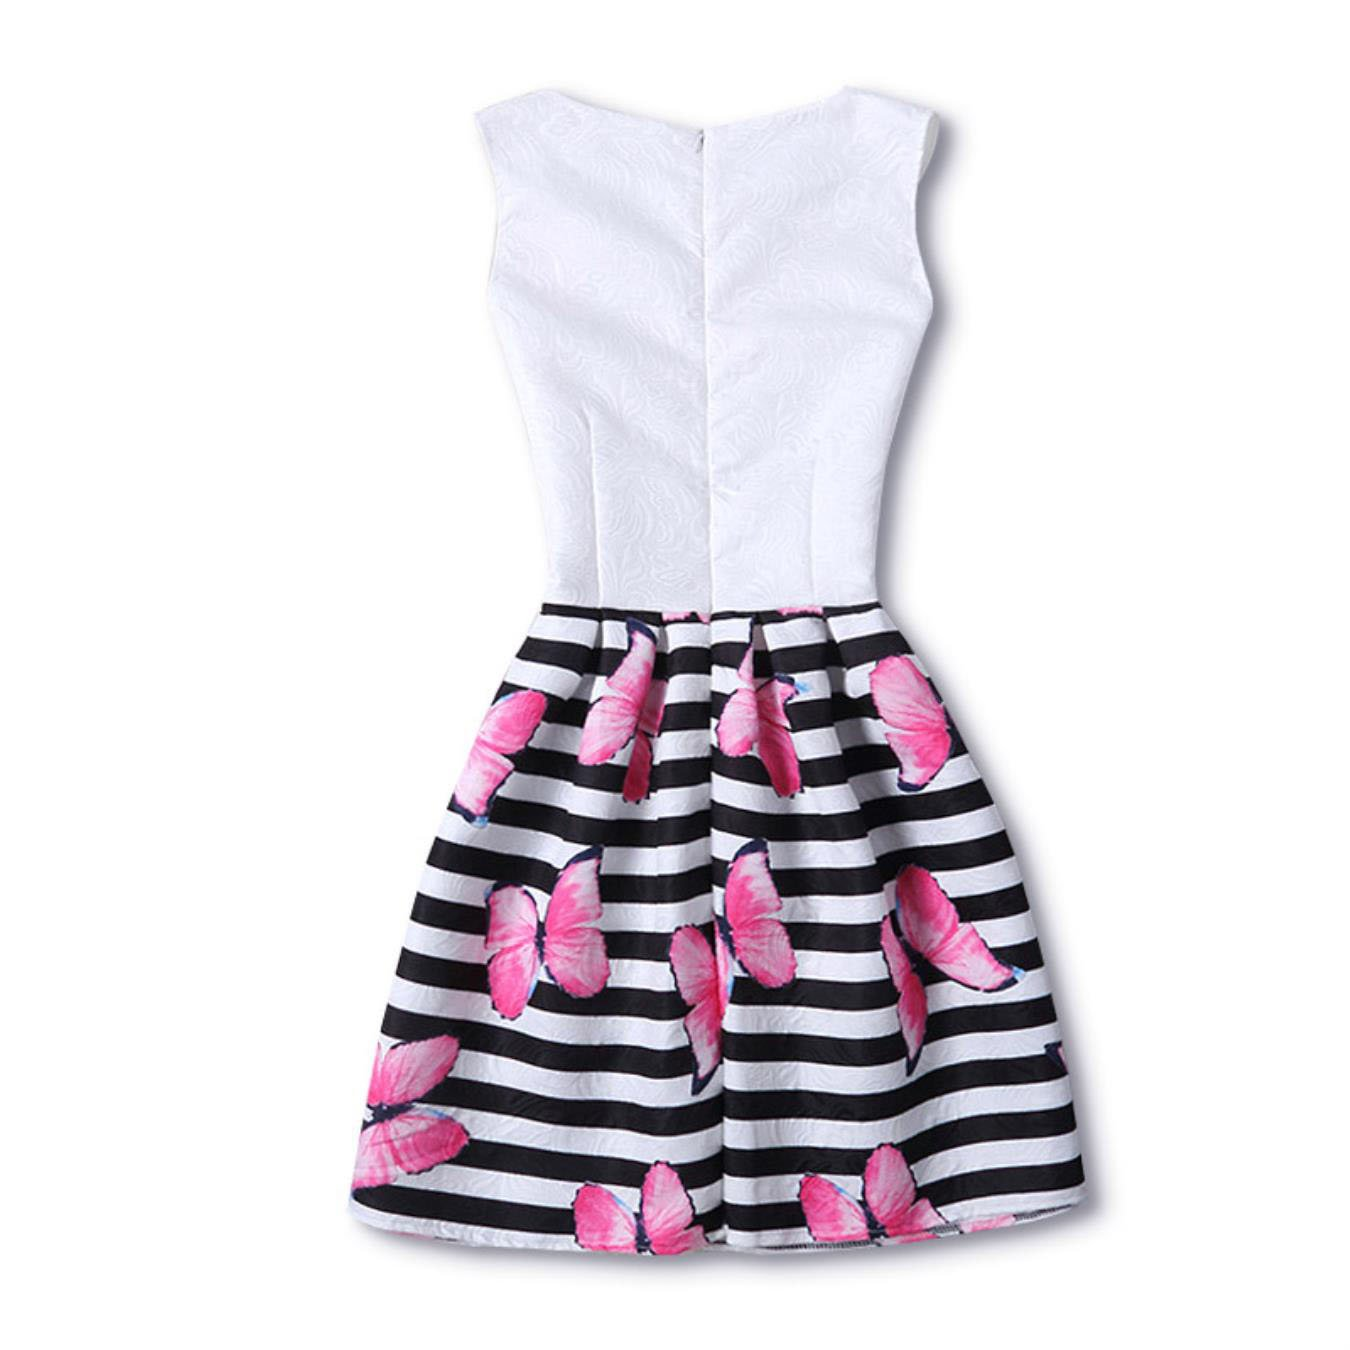 Amazon.com: EooDOO Girl Summer Dresses for Girl of 14 Years Sleeveless Big Size Princess Dresses Teenagers Girl: Clothing